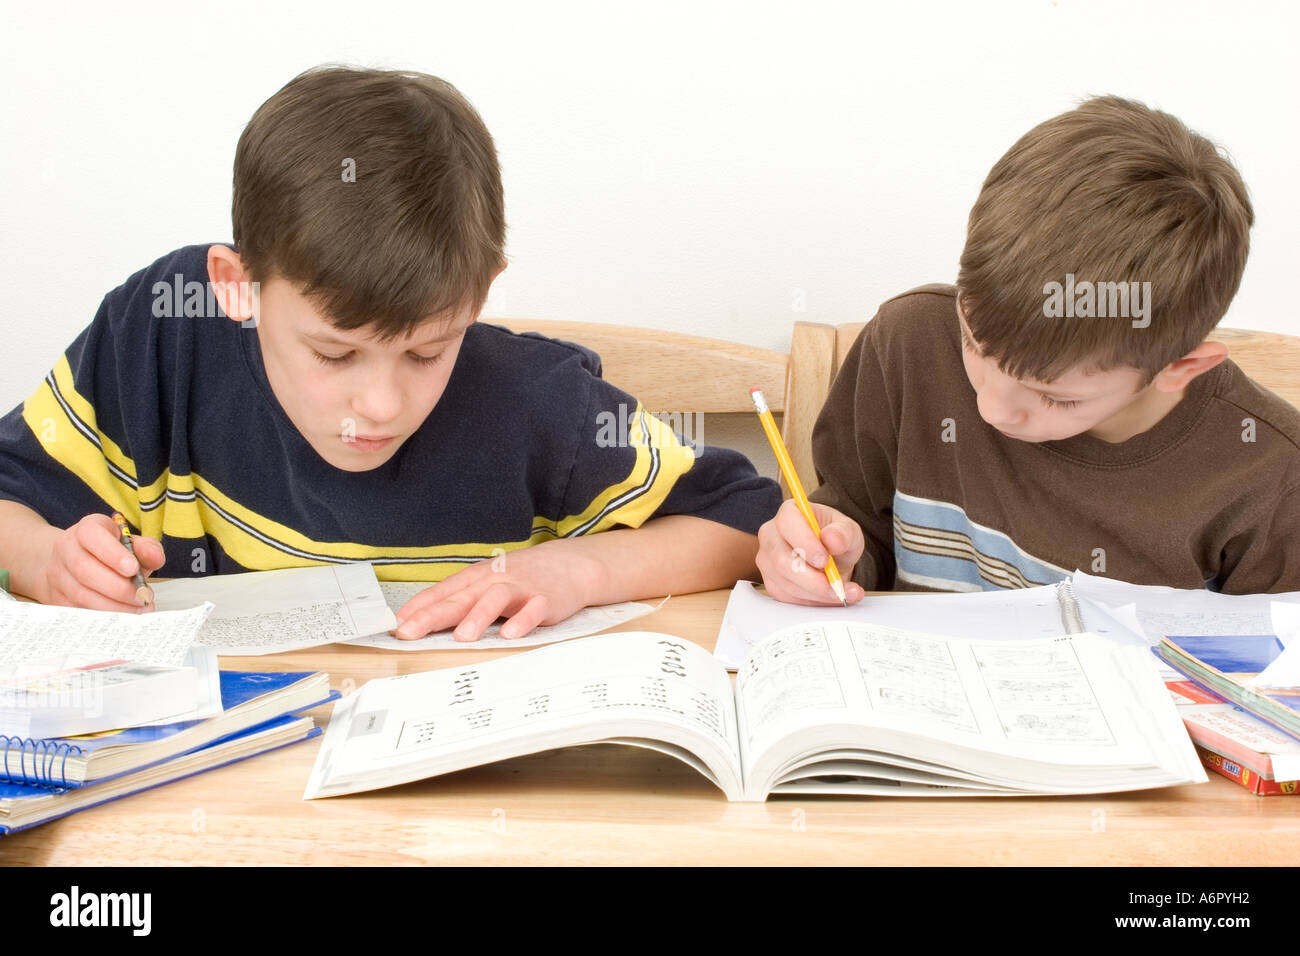 Boys doing home work study writing in book and reading